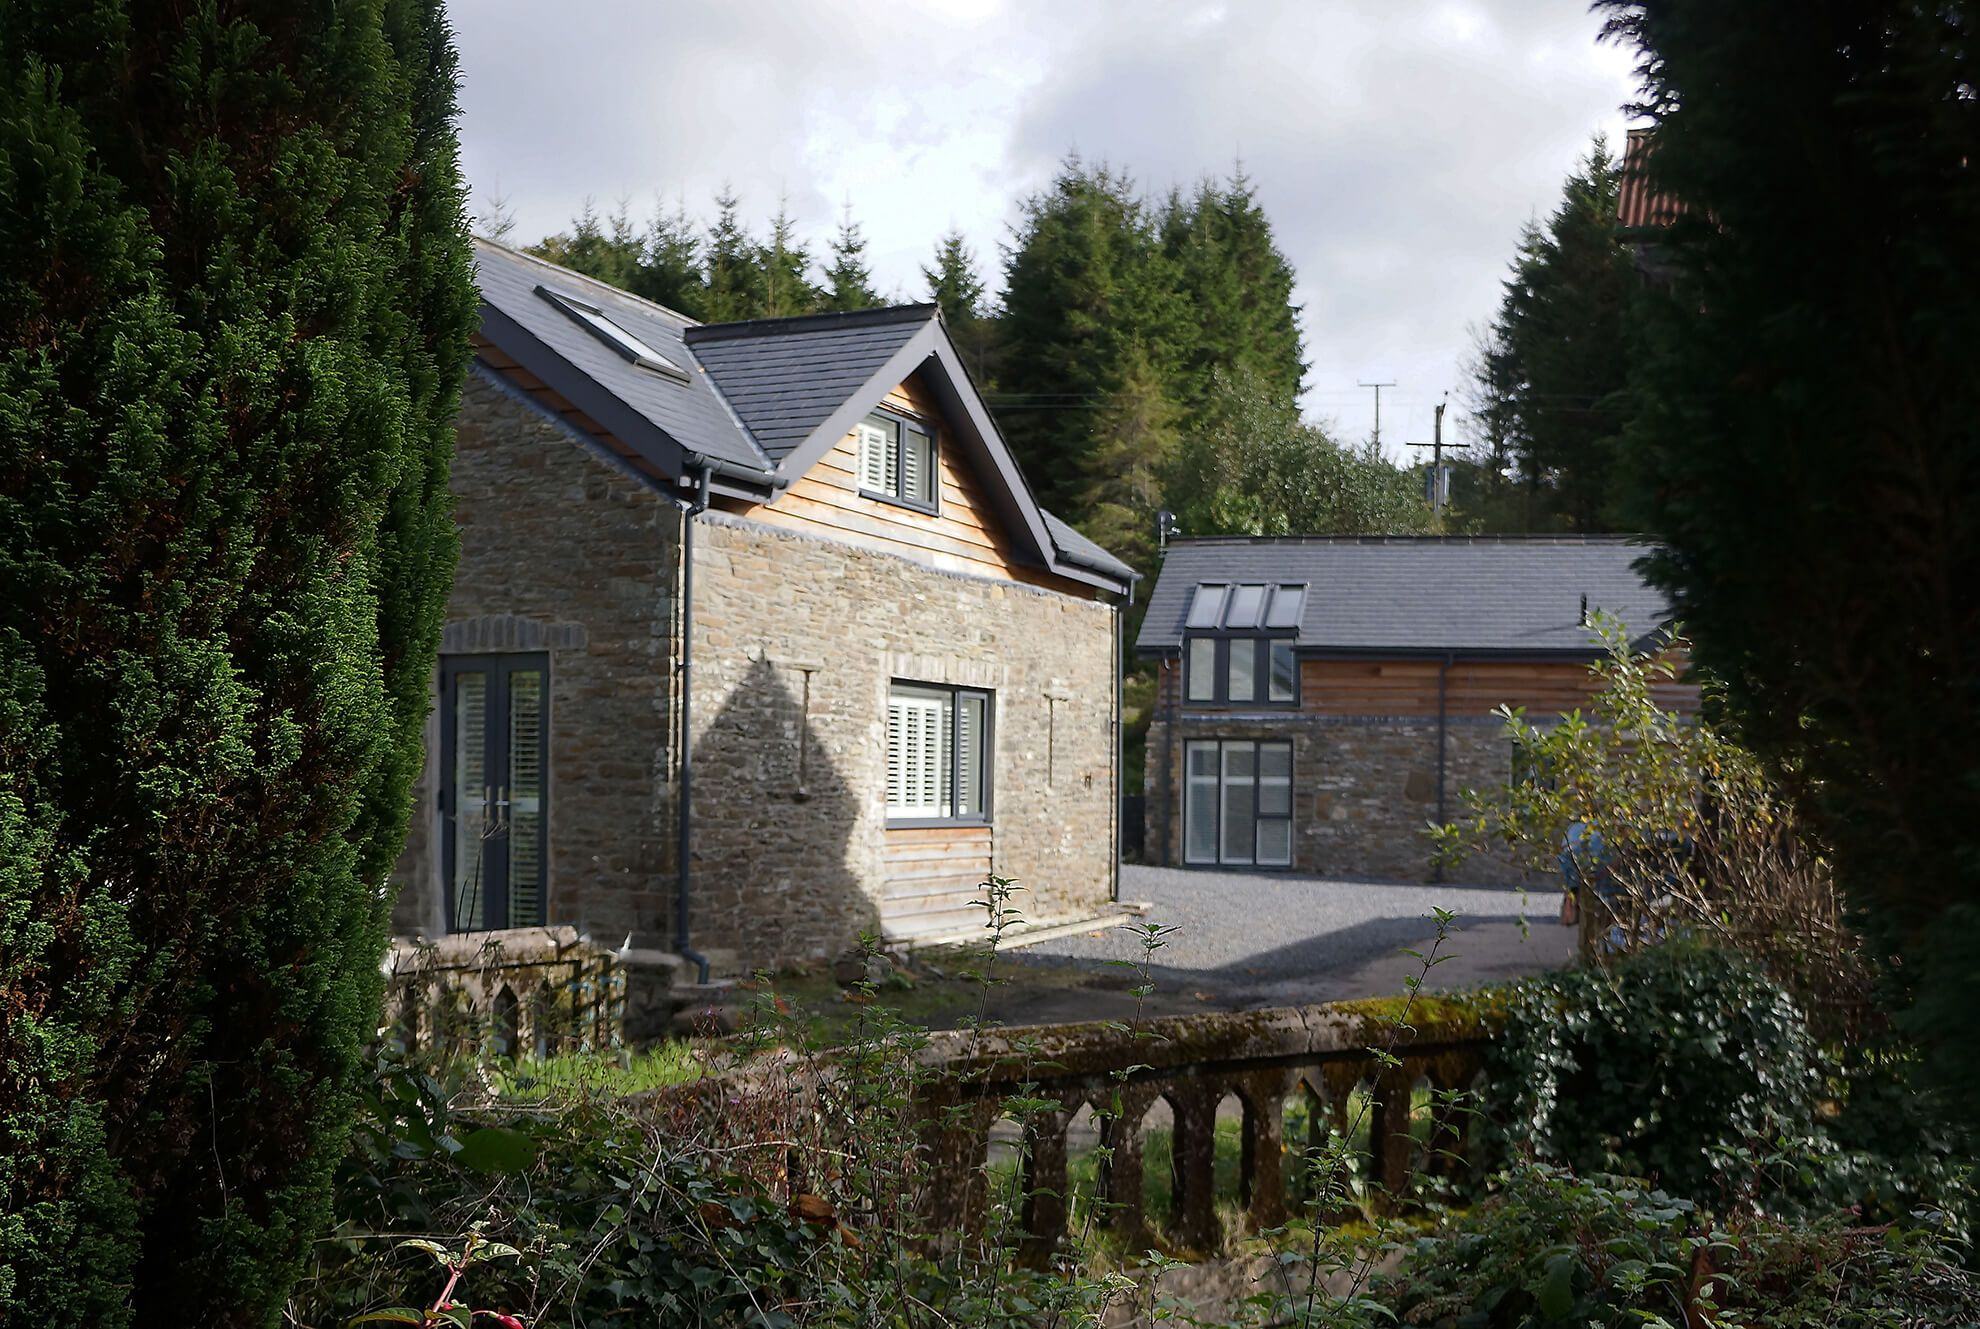 Lloc Llo is located by the old bridge into the farmyard